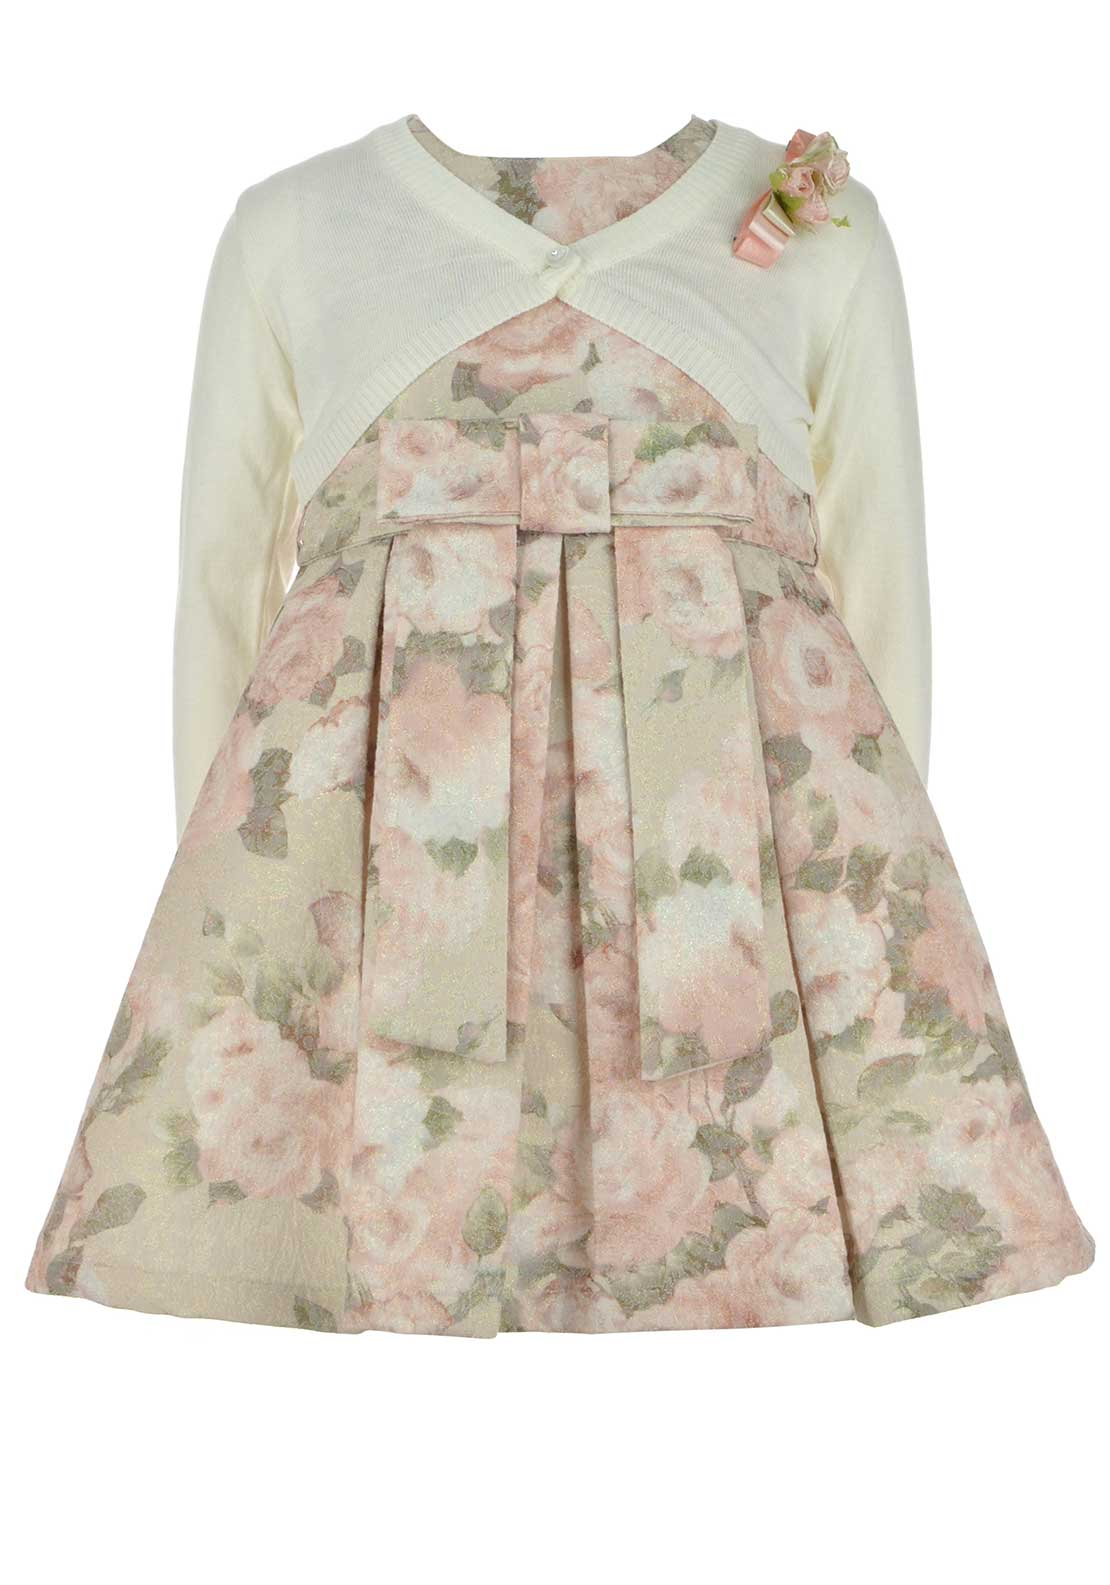 Couche Tot Girls Glitter Rose Print Dress and Bolero Set, Beige and Pink